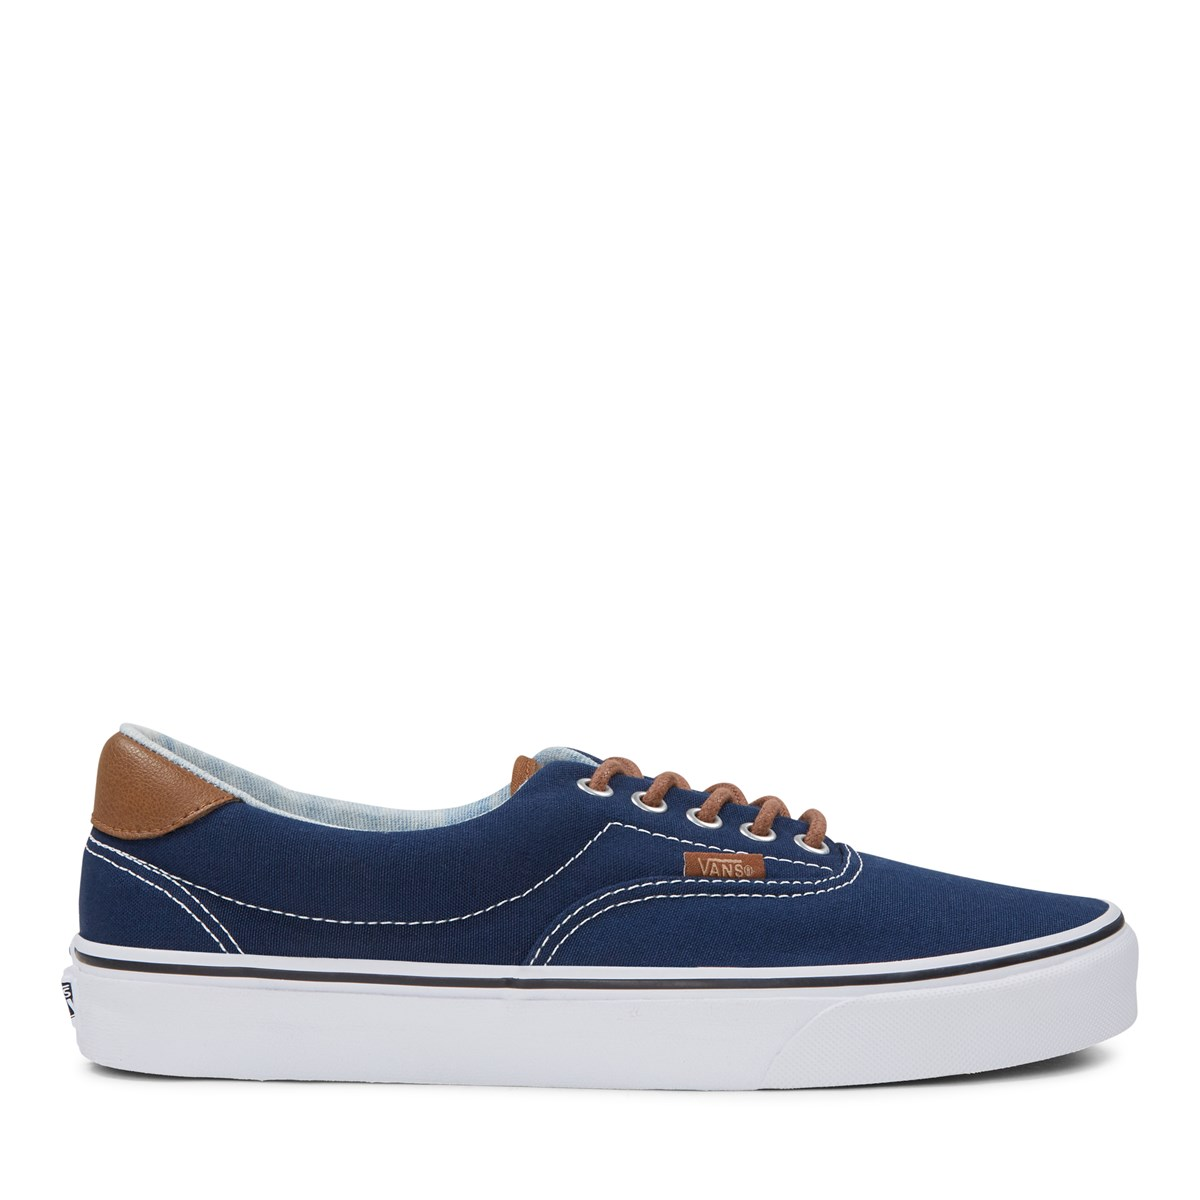 Men's C&L Era Sneakers in Blue